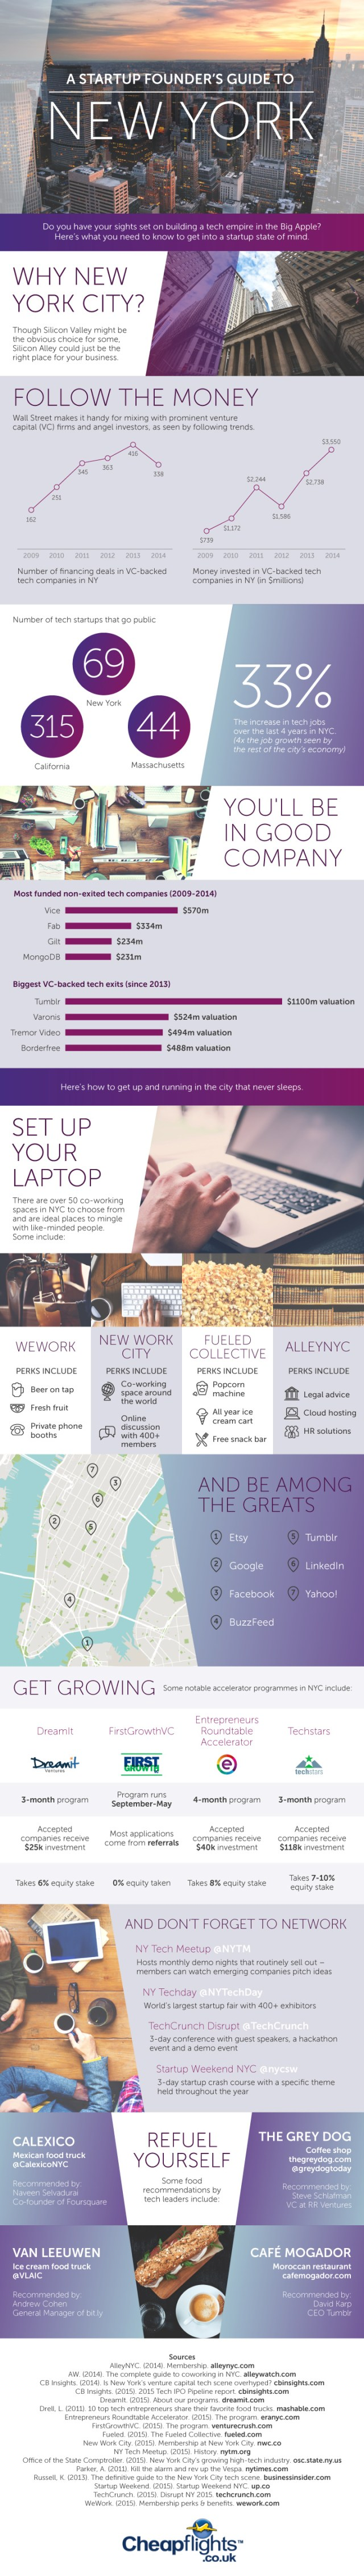 a-startup-founders-guide-to-new-york-UK-V5